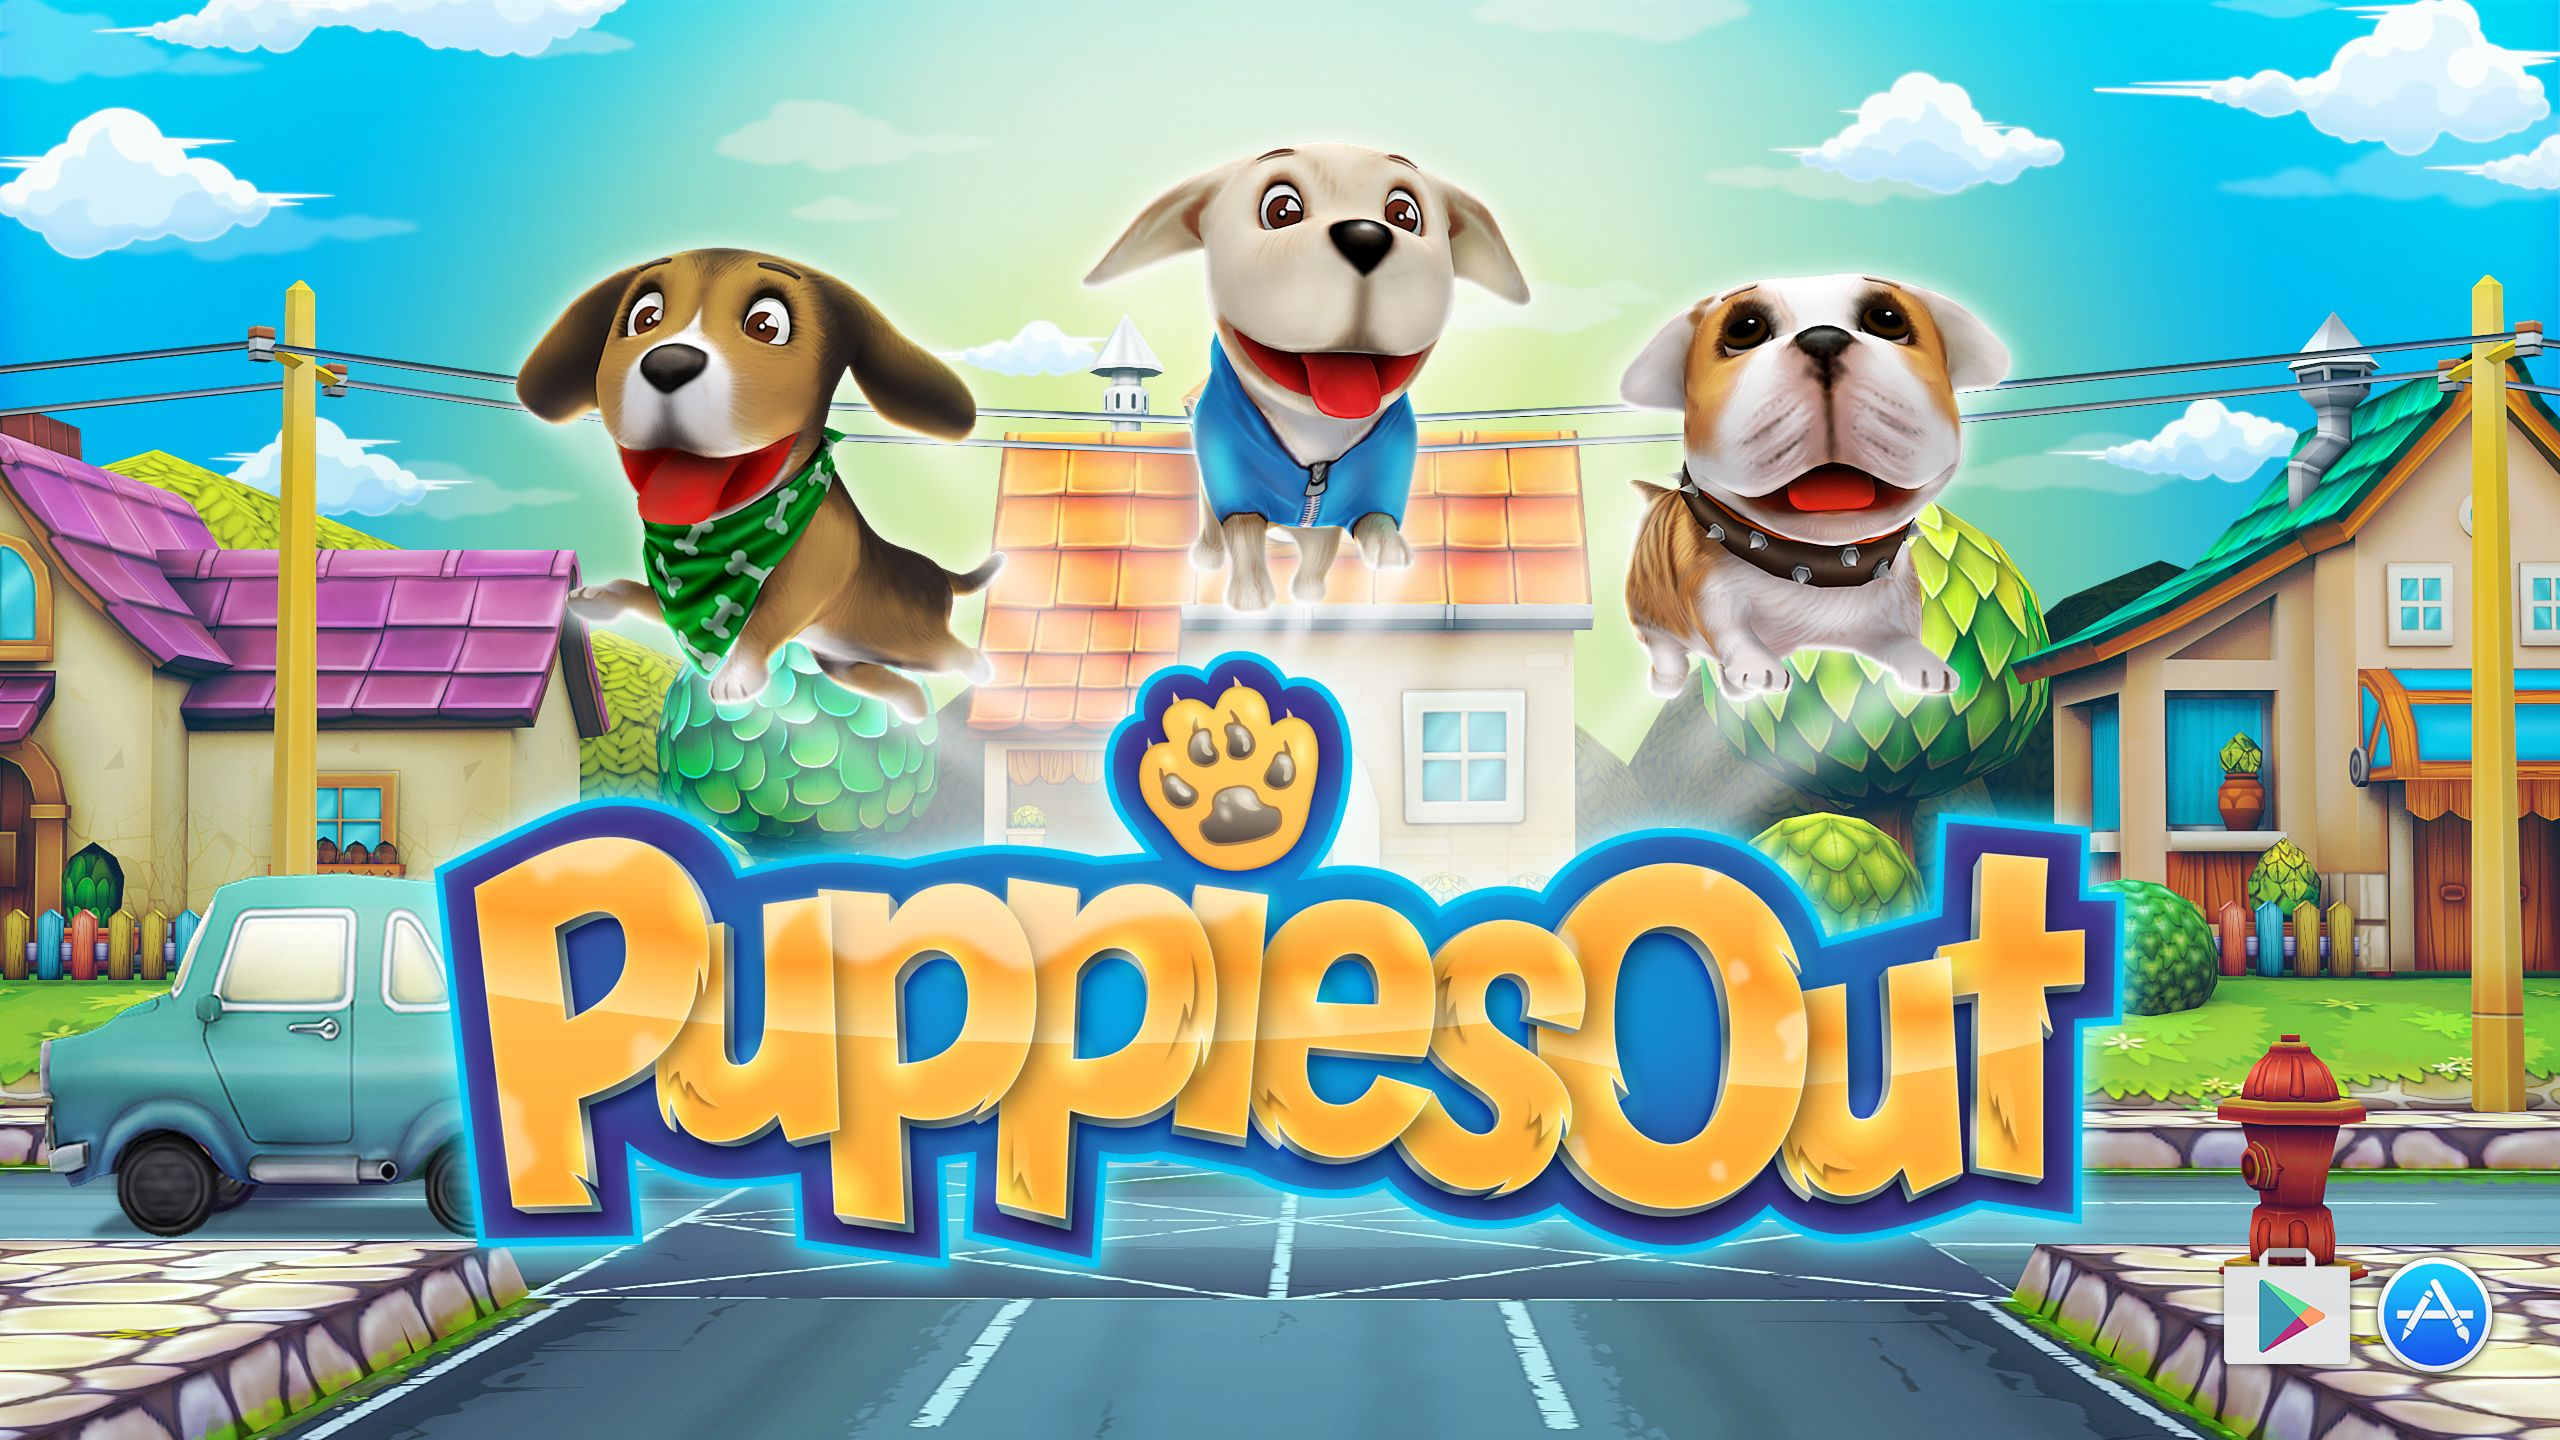 Puppies Out Cute pet names, Runner games, Puppies